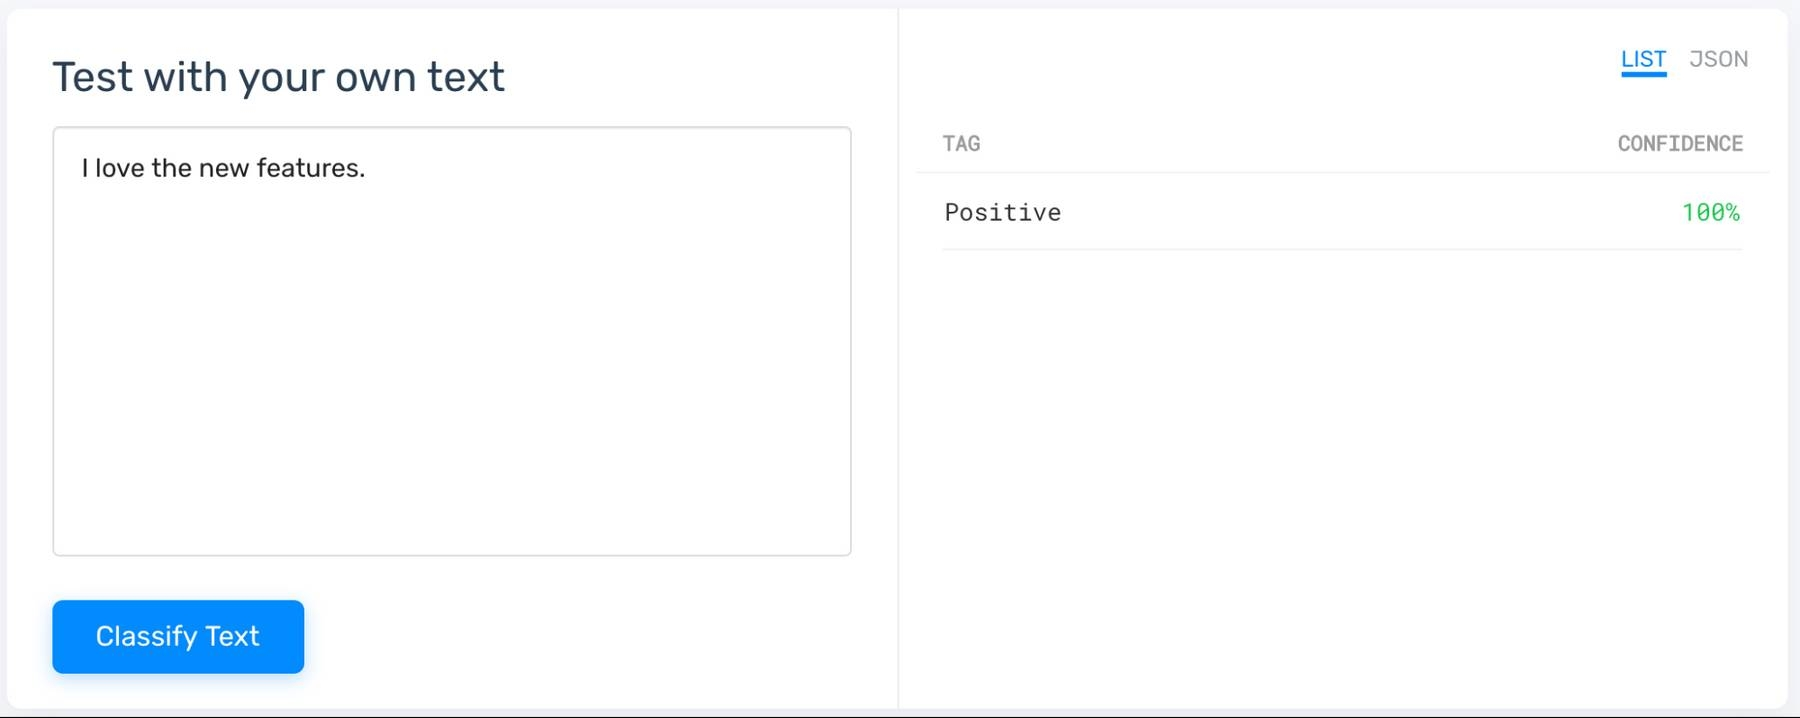 Testing the sentiment analysis model. Text, 'I love the new features,' automatically tagged as 'Positive.'